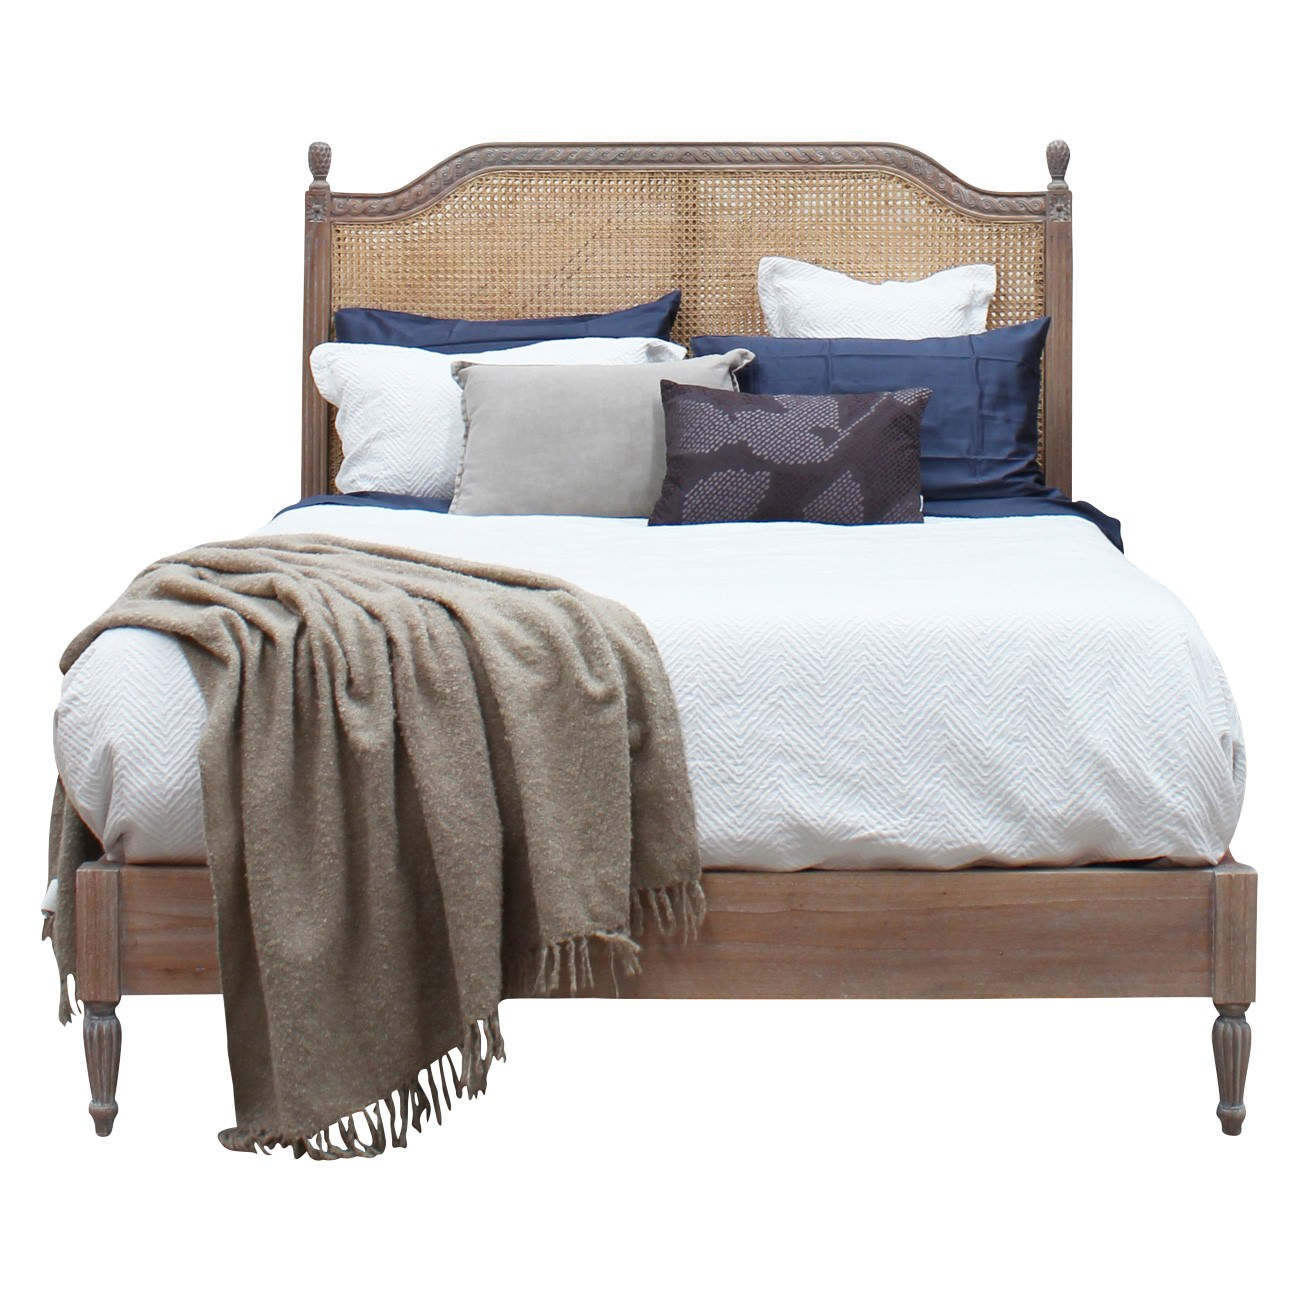 Lapalisse Handcrafted Mind Wood & Rattan Bed, Queen, Weathered Oak